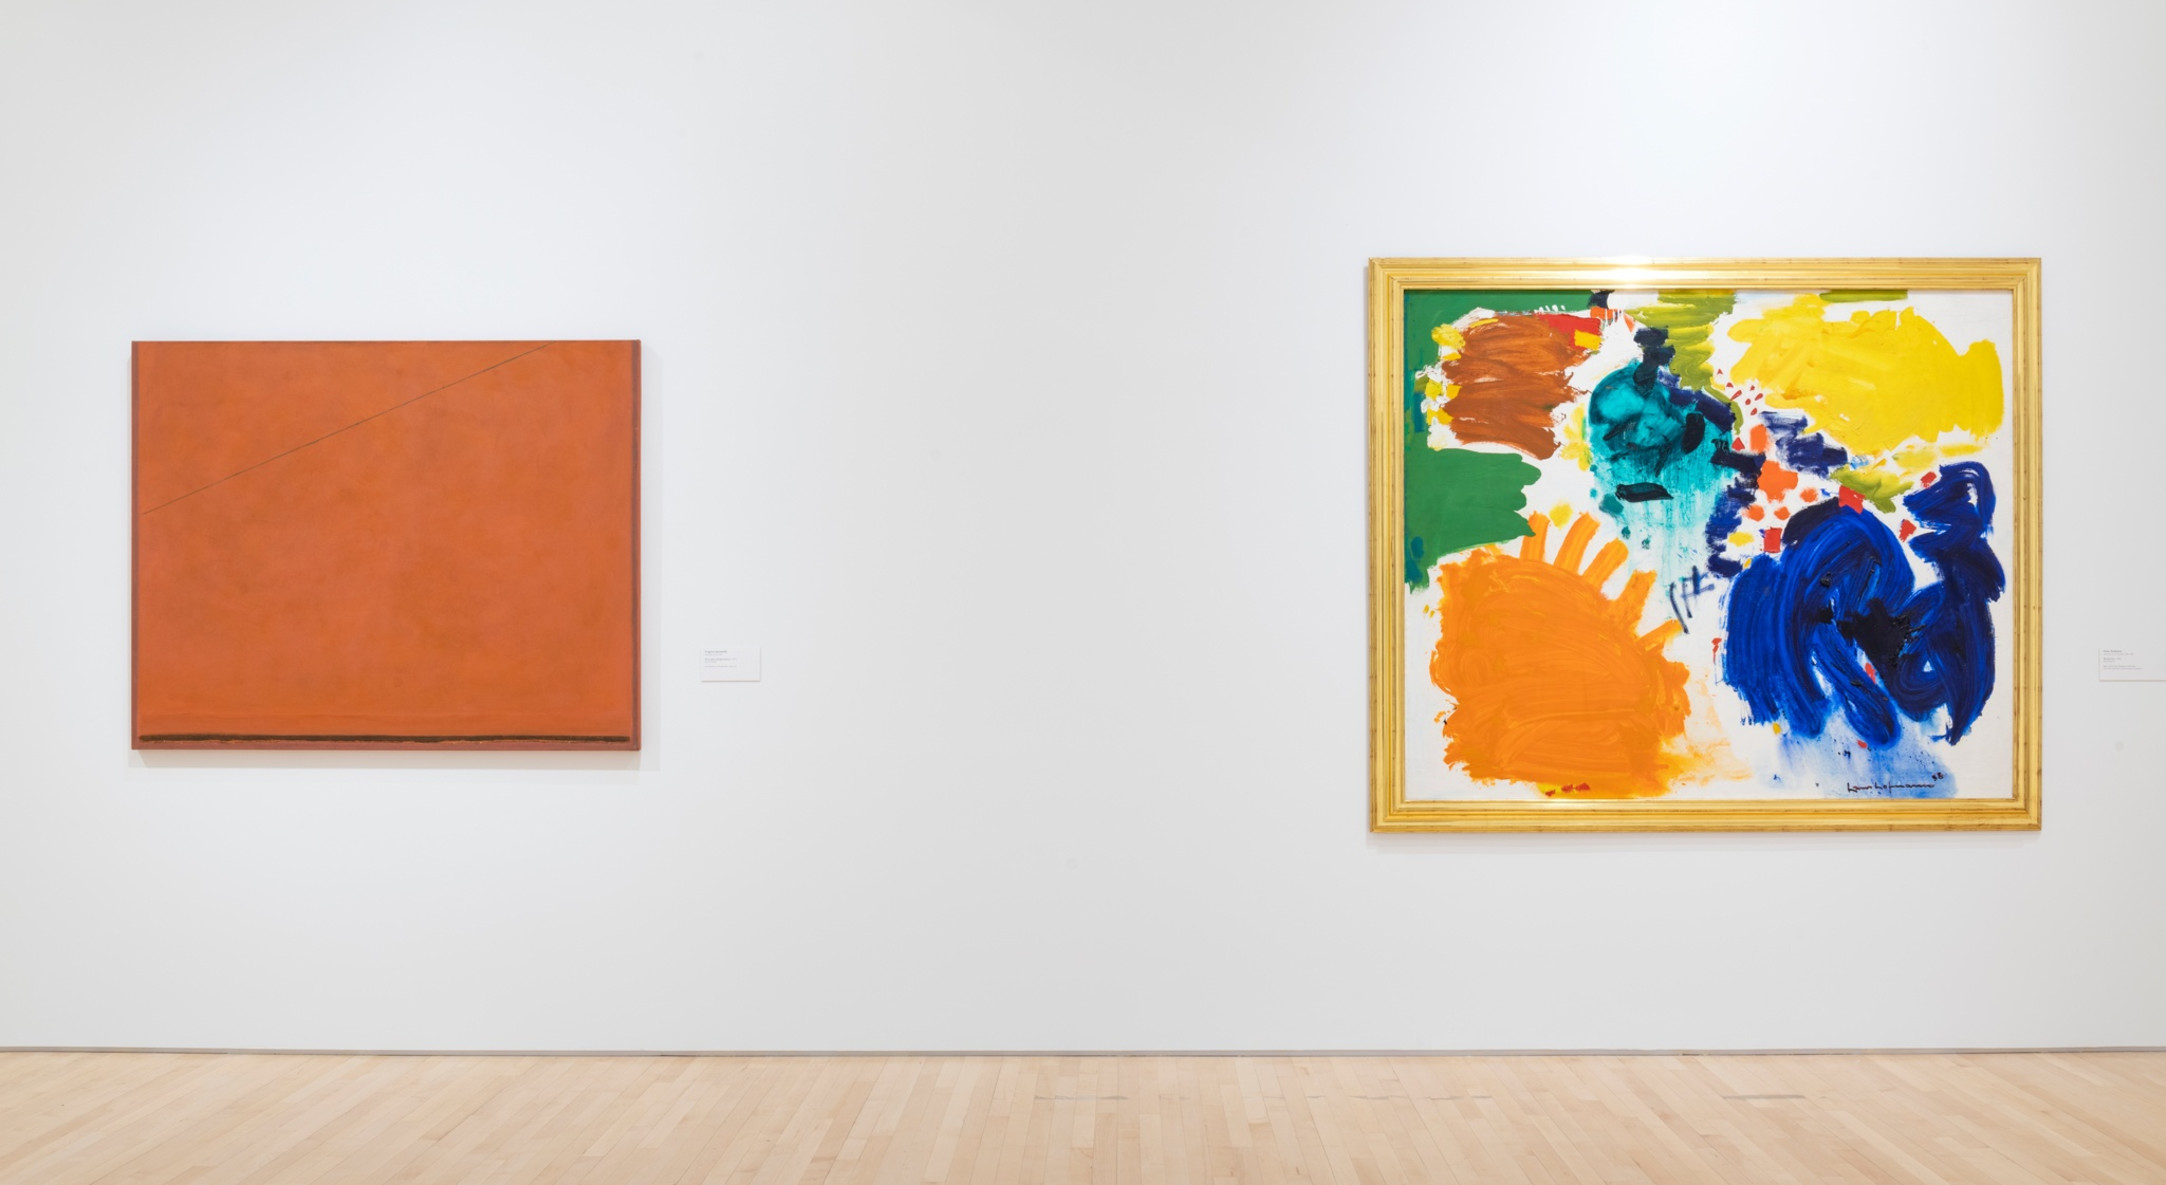 Lexicon The Language of Gesture in 25 Years at Kemper Museum (May 16–August 25, 2019), Kemper Museum of Contemporary Art, Kansas City, Missouri. Photo by EG Schempf